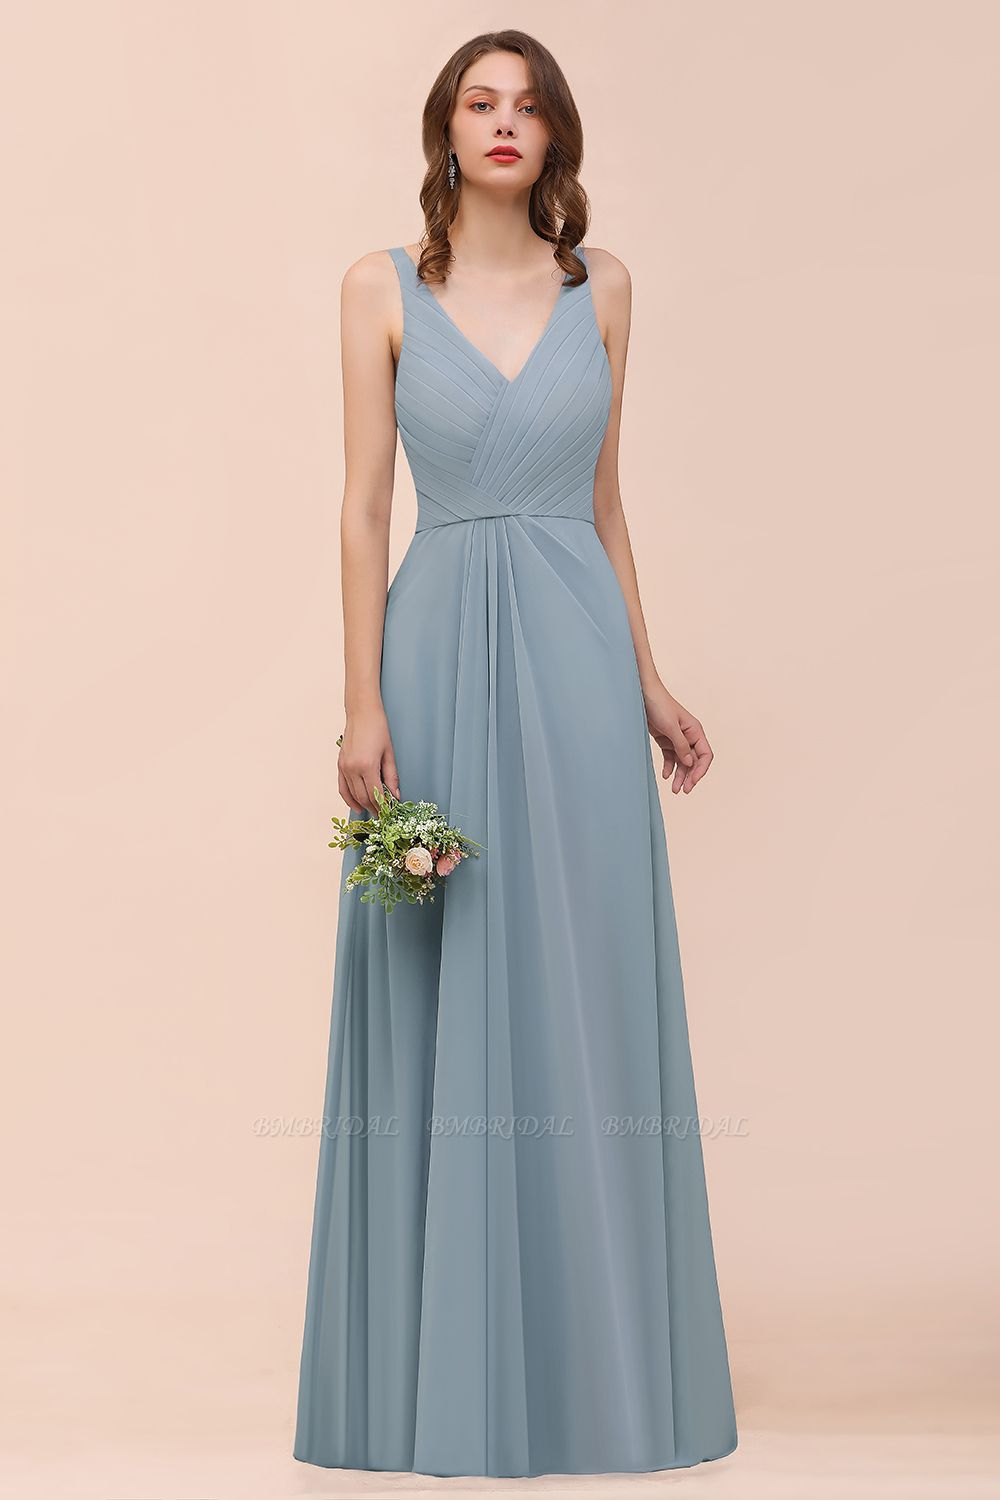 Elegant V-Neck Ruffle Dusty Blue Chiffon Bridesmaid Dresses Online